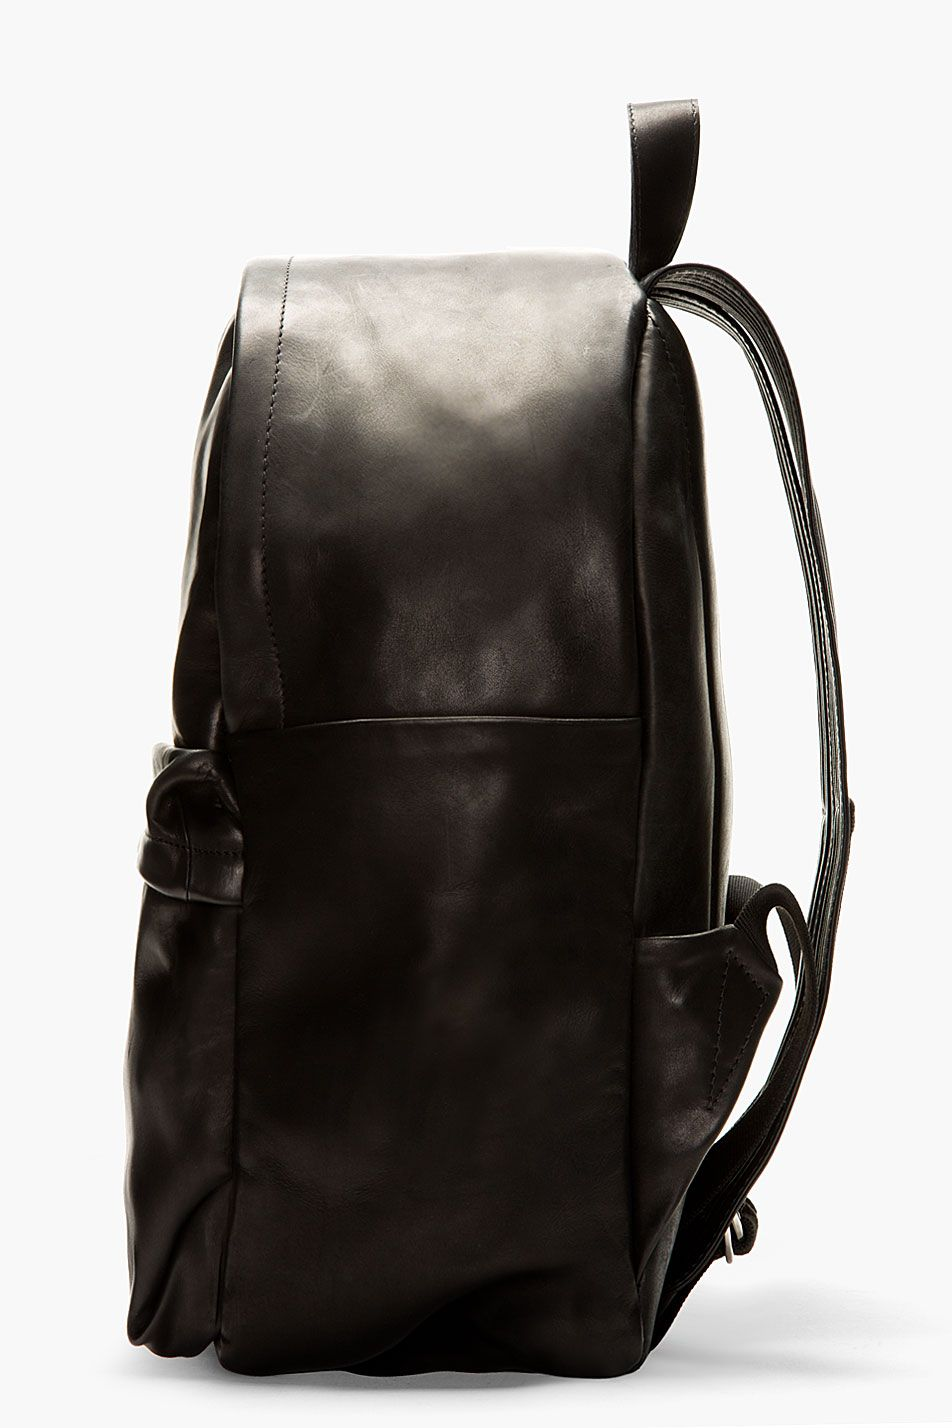 76896f8461 SILENT BY DAMIR DOMA Black Smooth Leather Bay Men Backpack ...